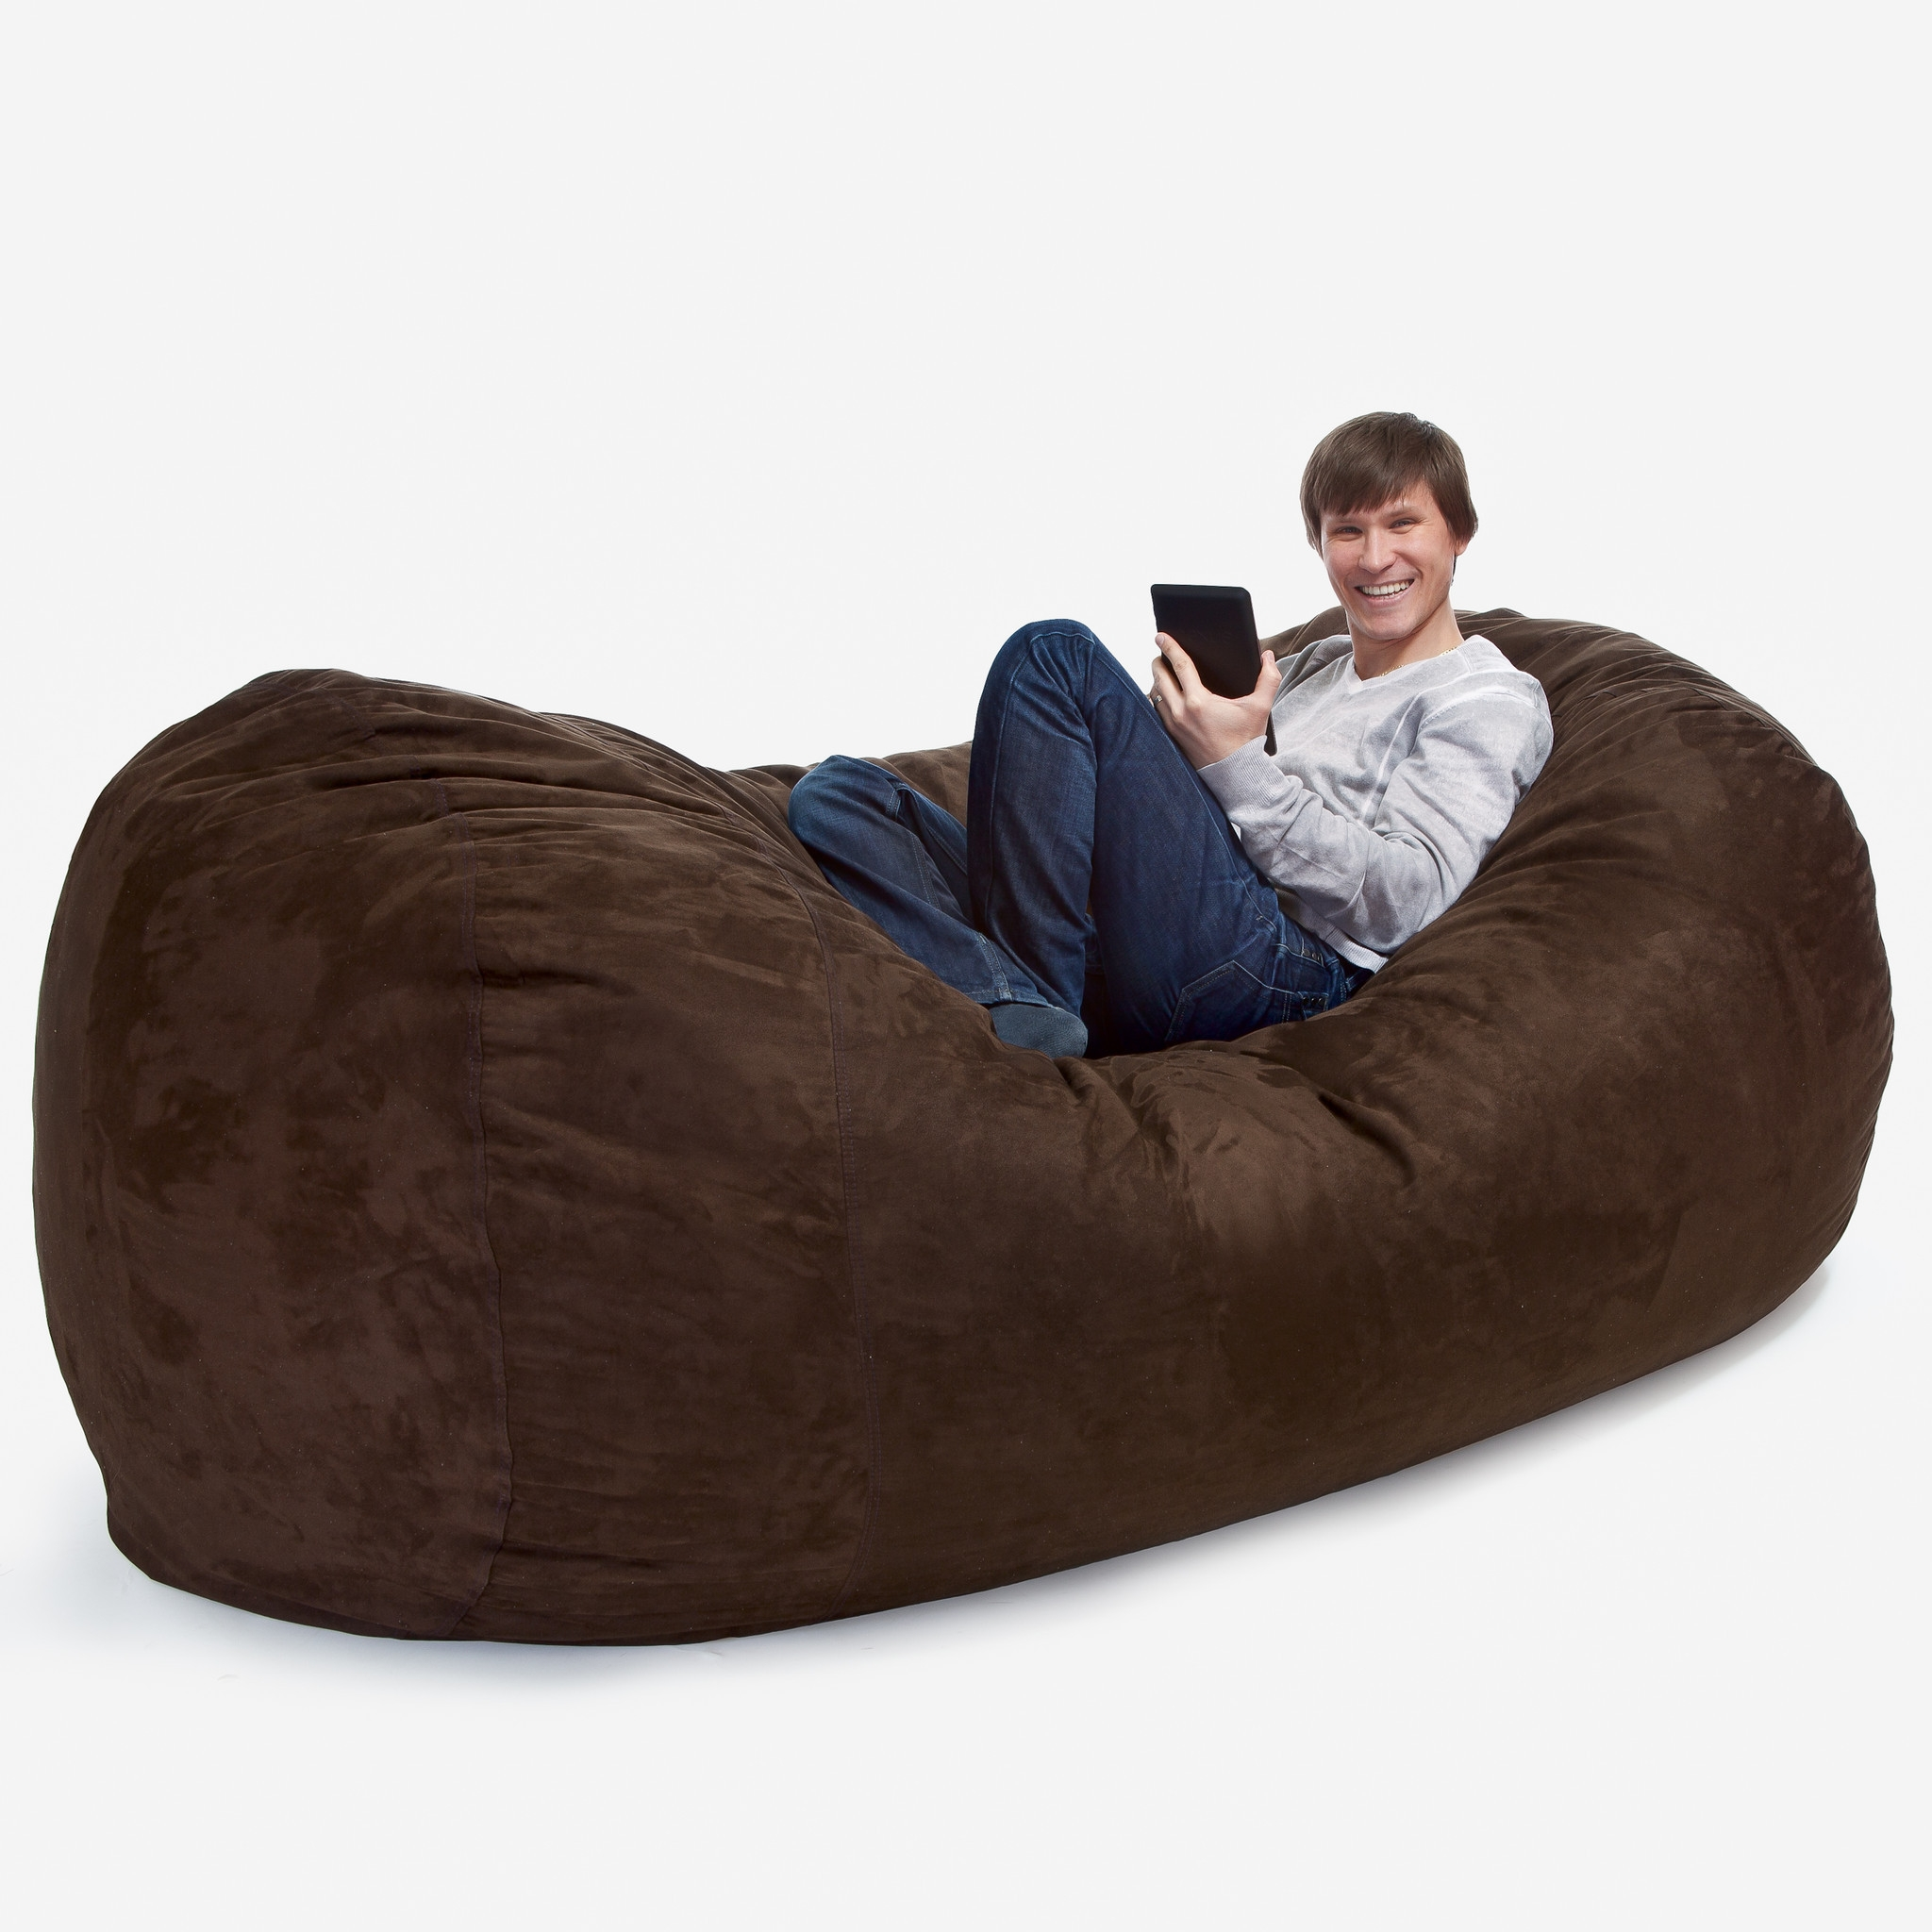 7 Classy Adult Bean Bags Room Bath Intended For Bean Bag Sofa Chairs (Image 1 of 15)